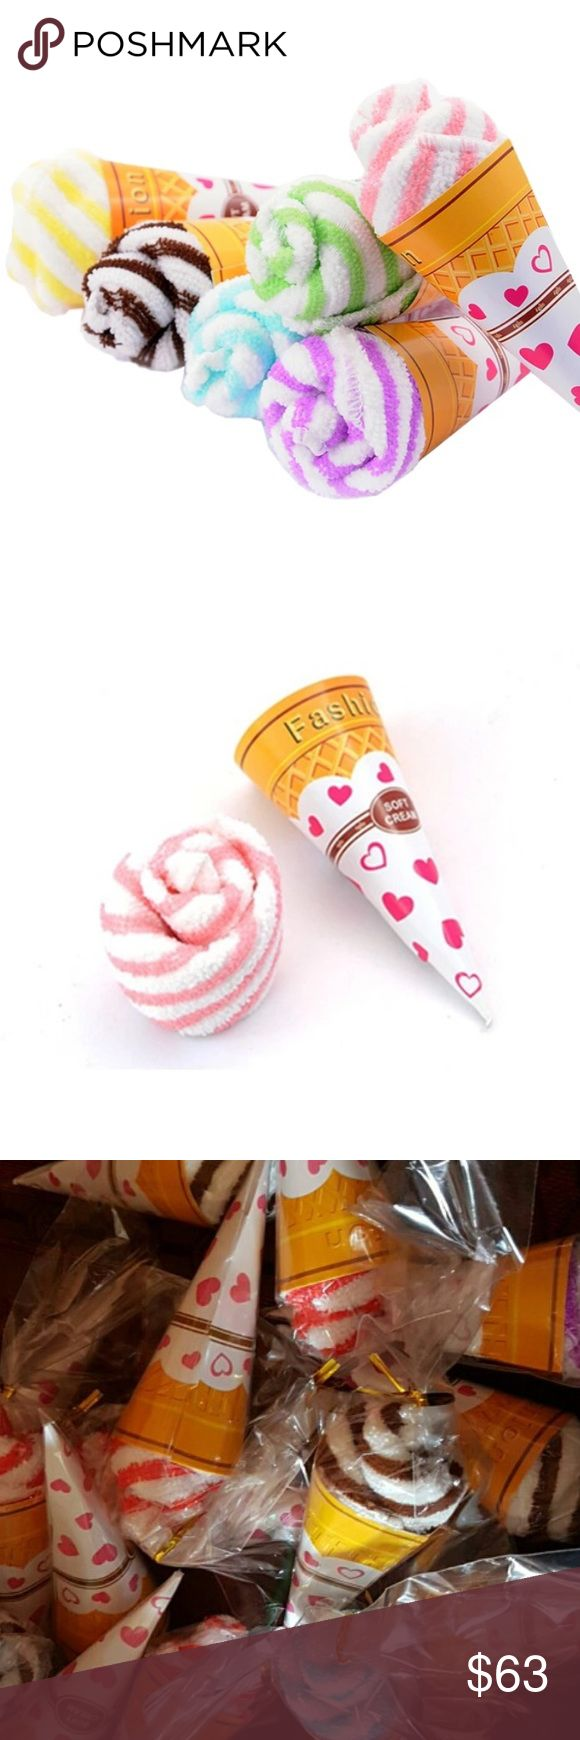 Party Favors Ice Cream Towel Lot of 30 Fun & Cute Ice cream hand towel party favors. This is for a lot of 30 mixed colors. This is great for a kids party or bridal shower themed party decorations. Could be used for many deco ideas at desert table set up at a party. Great price. Other